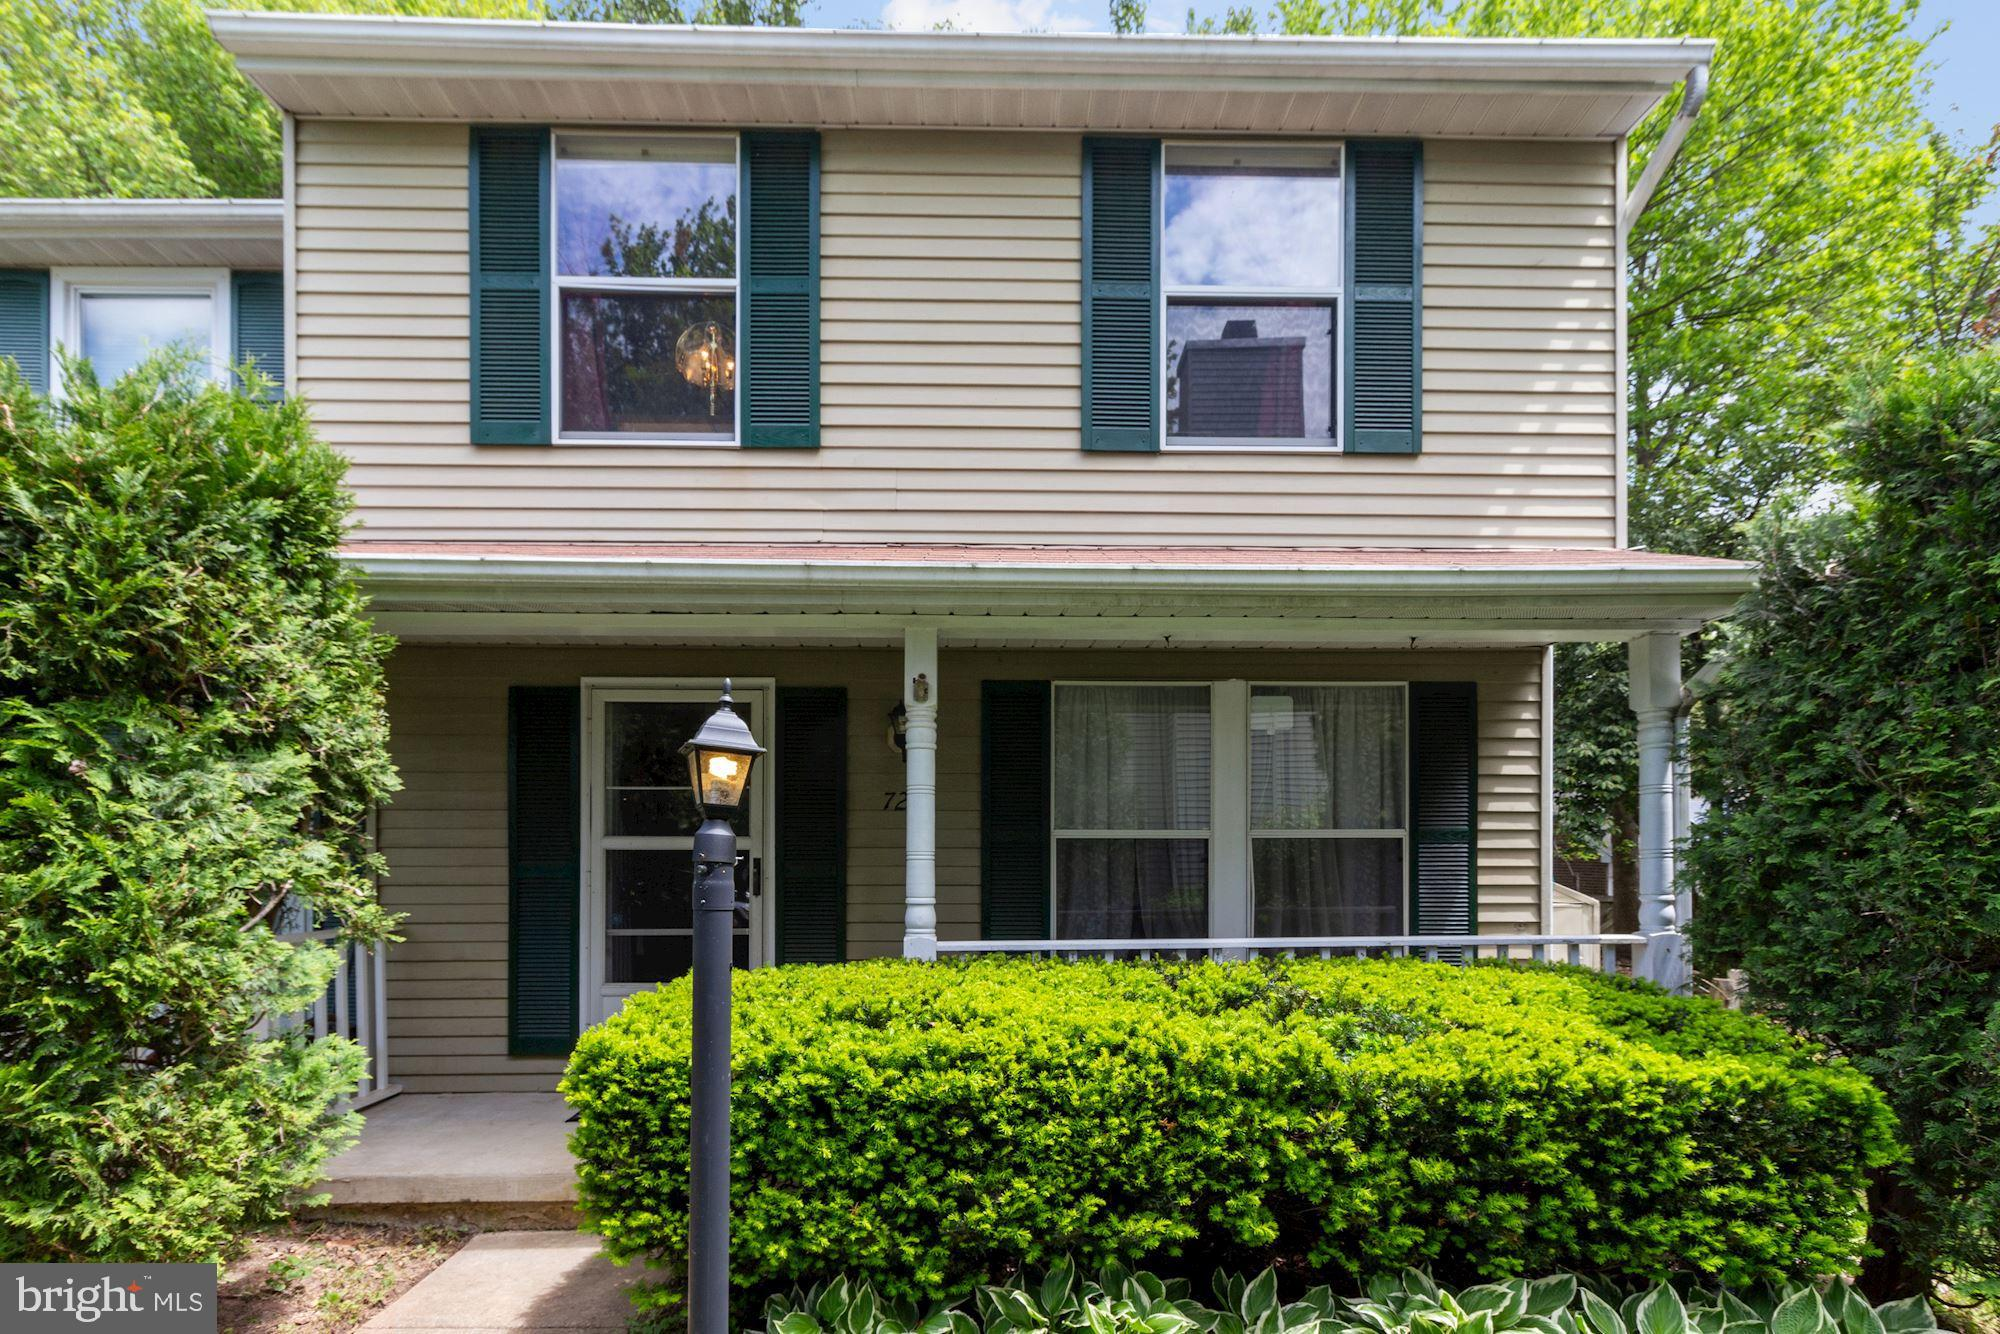 IDEAL LOCATION! Welcome home to this move in ready 3 bedroom 1.5 bath end unit duplex on a quiet cul